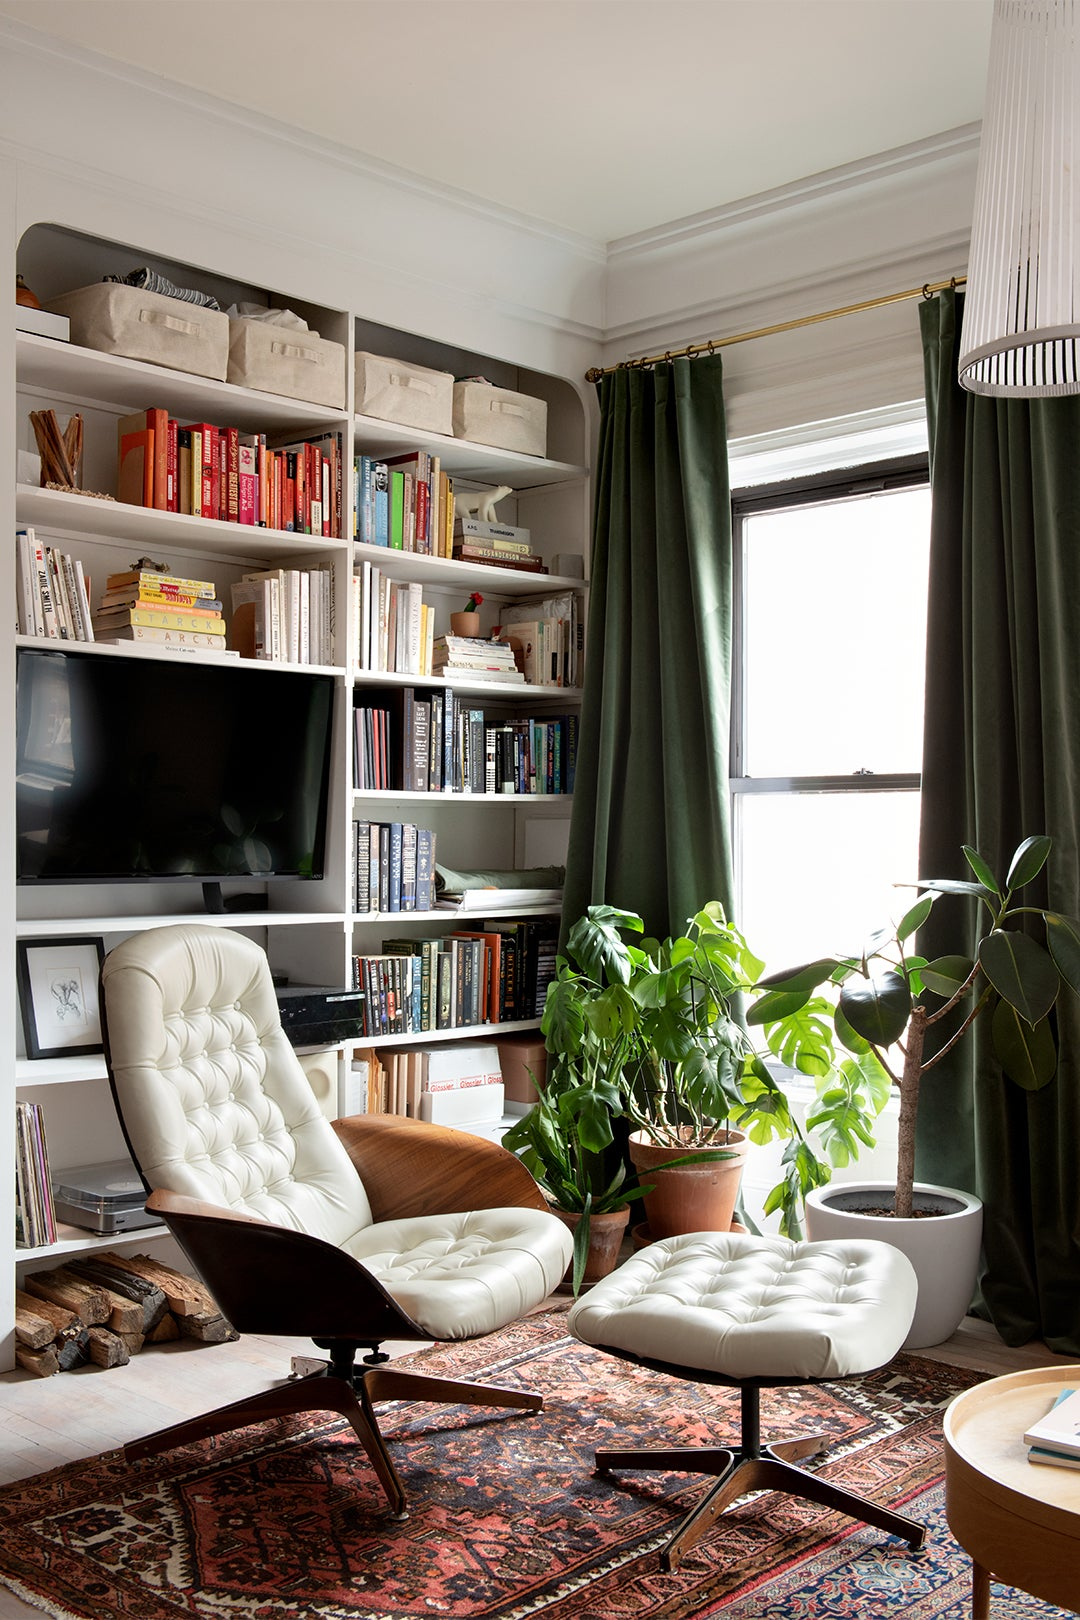 Eames-style chair in living room